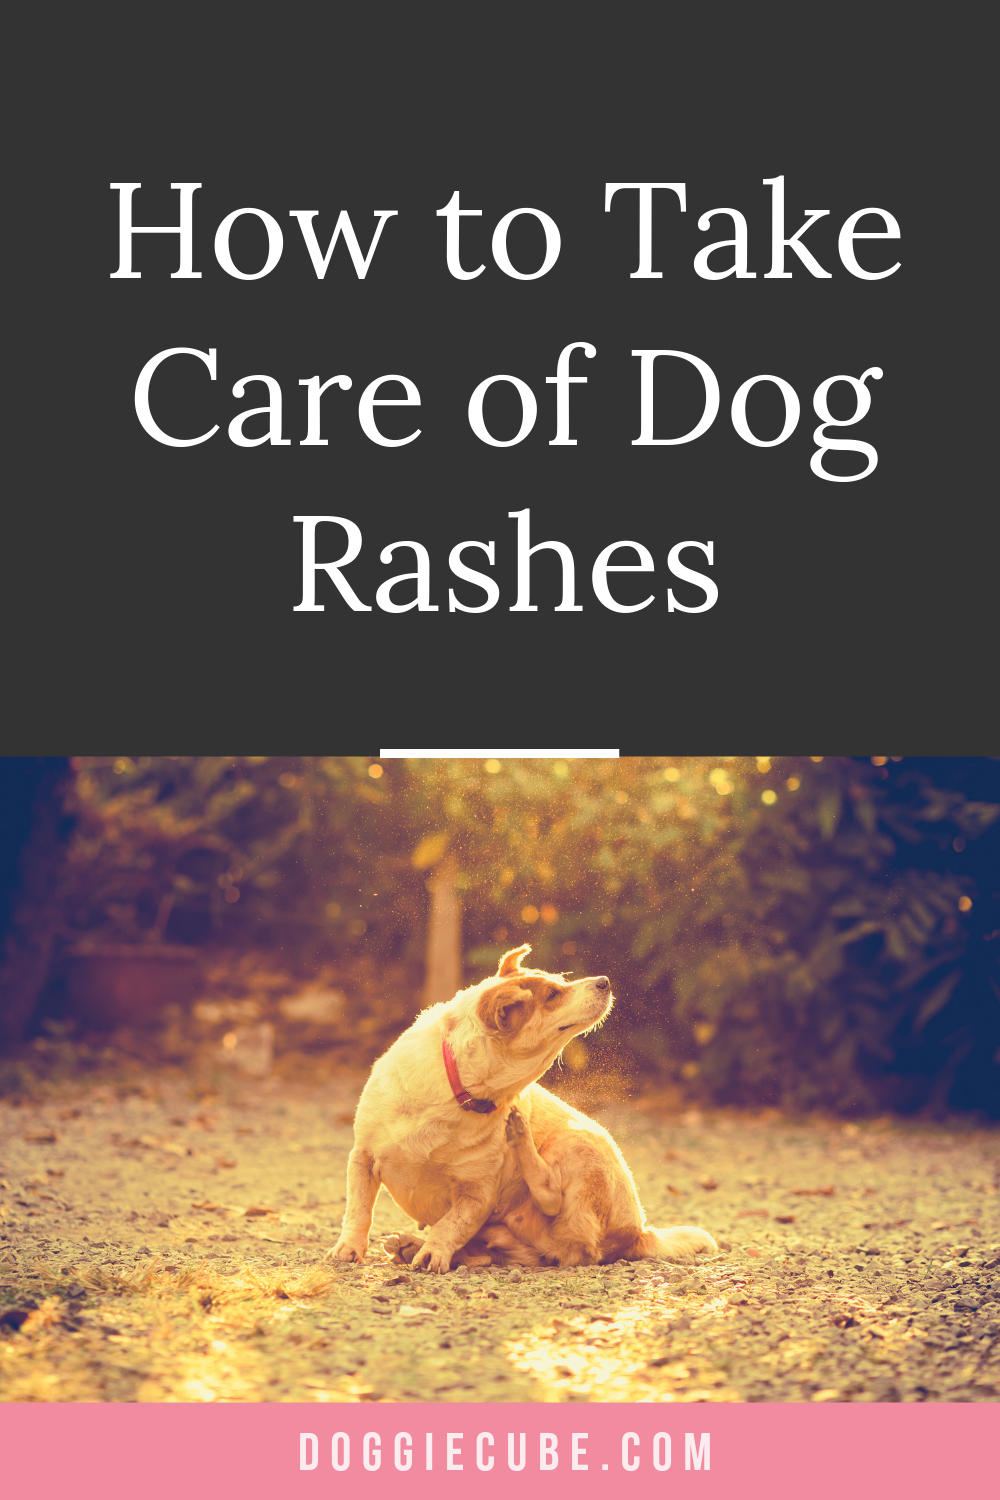 How To Take Care Of Dog Rashes Dog rash, Dogs, Dog care